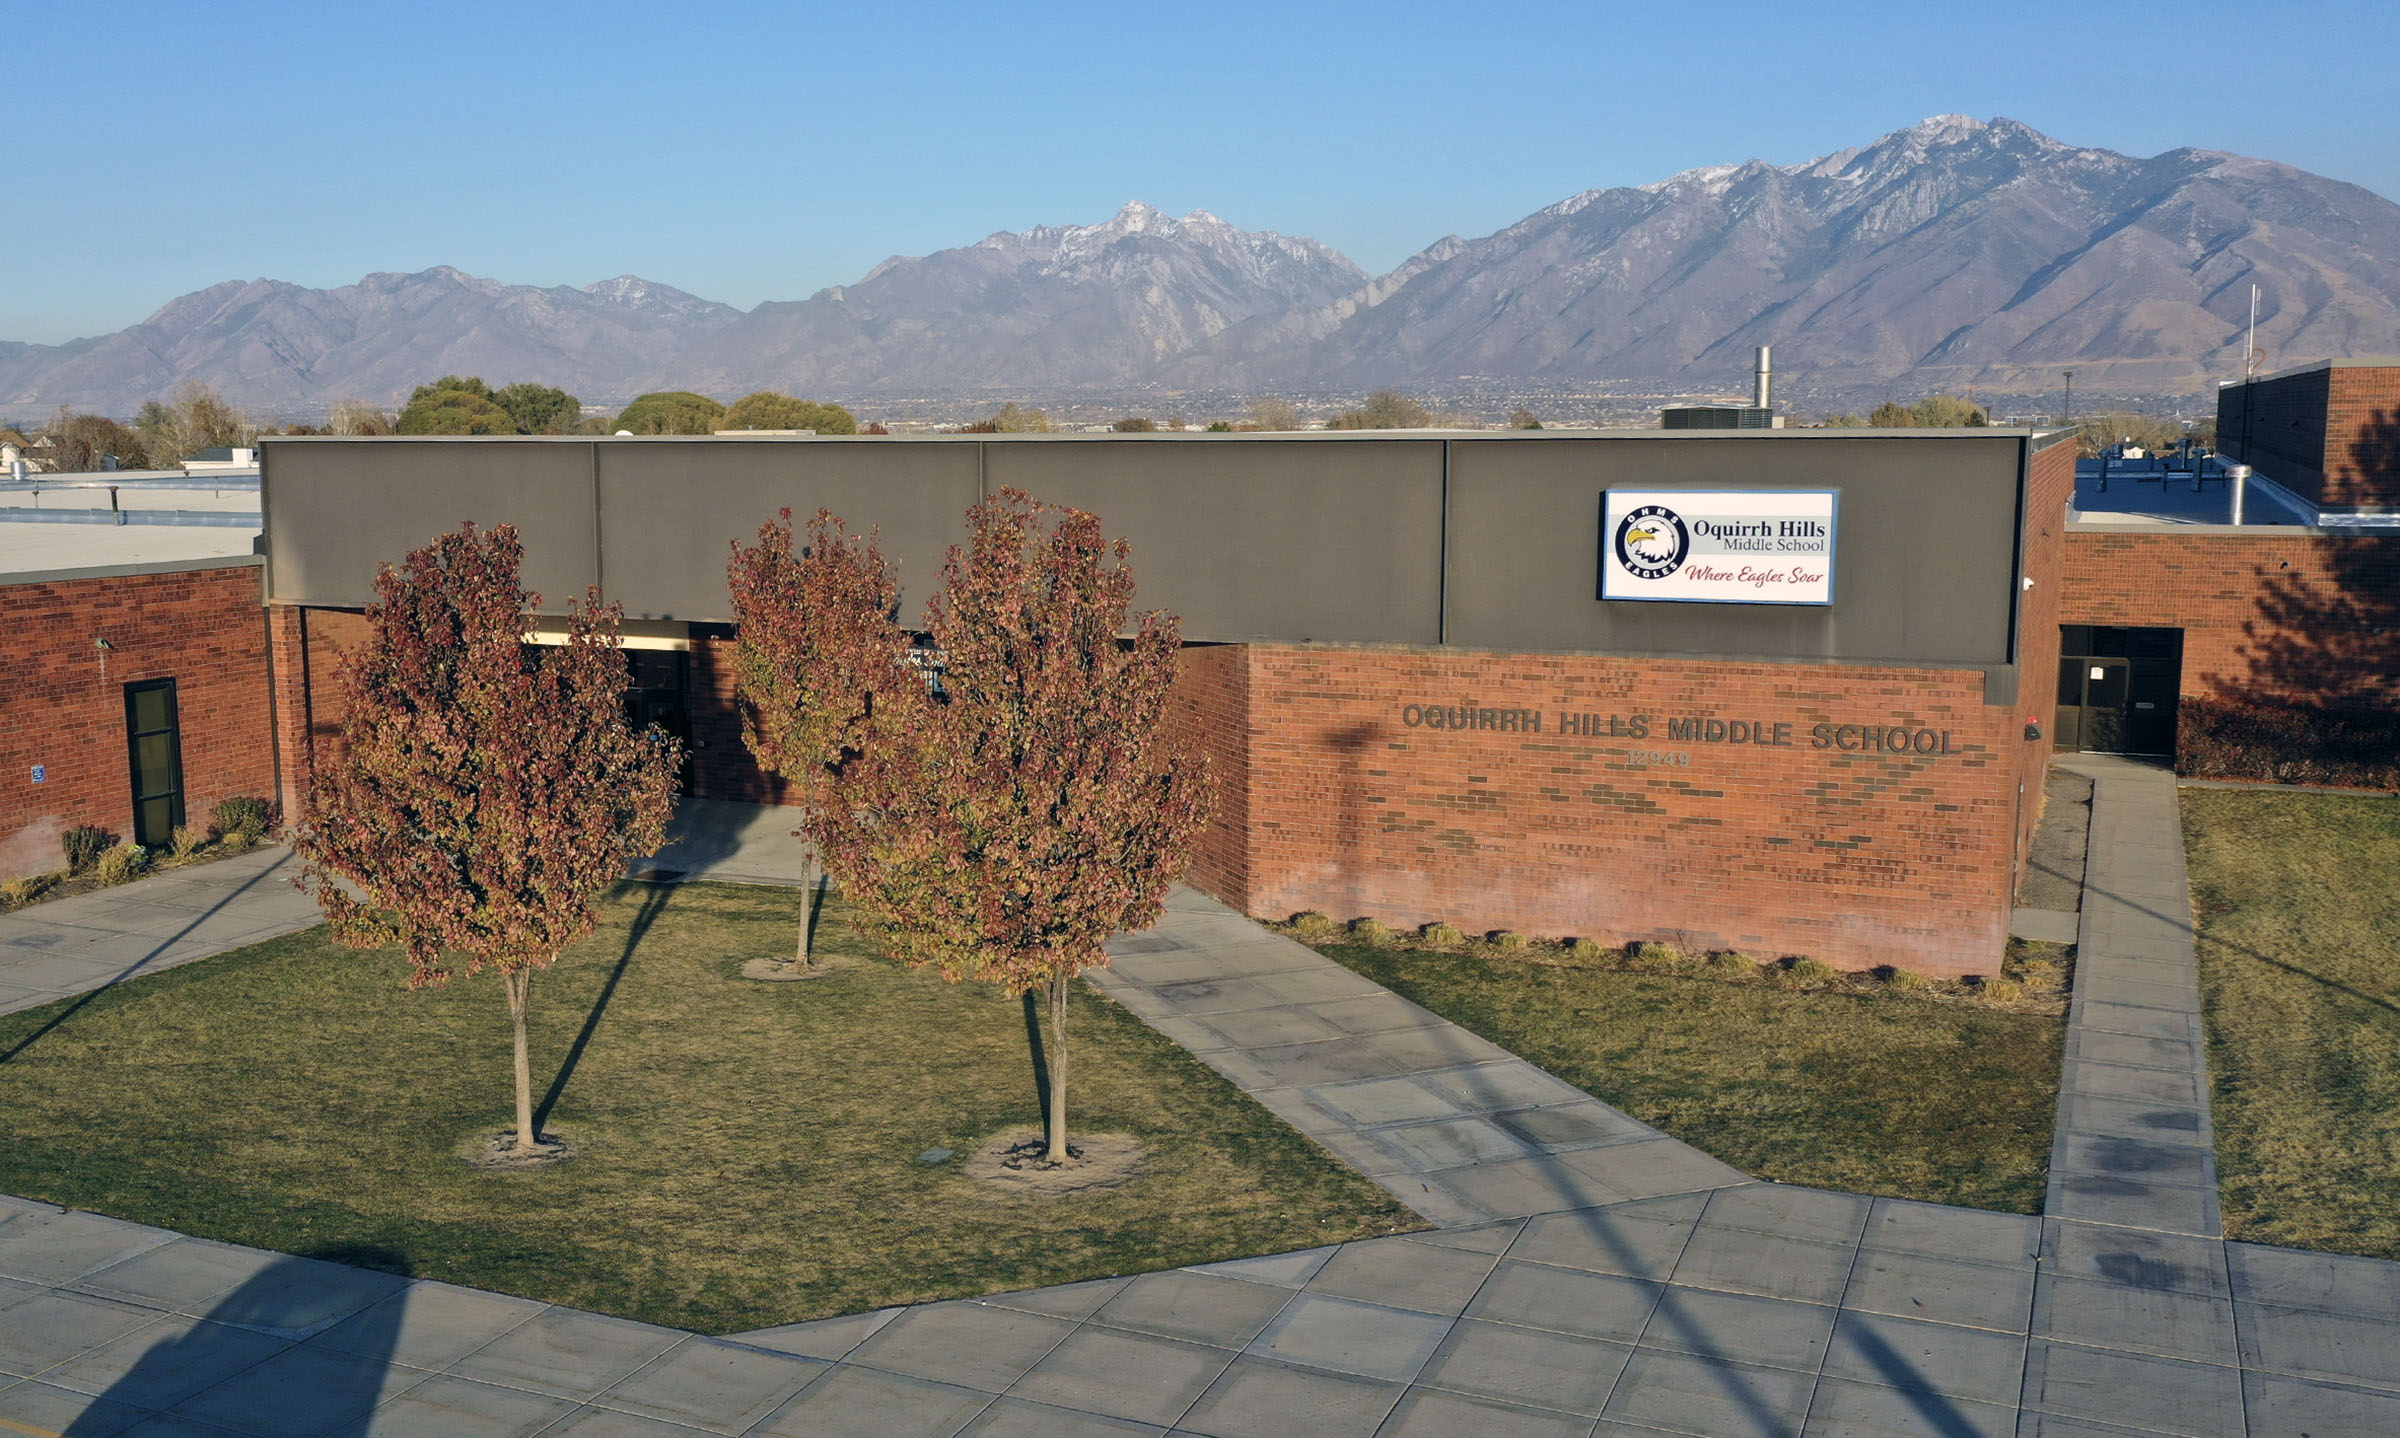 Oquirrh Hills Middle School in Riverton is pictured on Tuesday, Nov. 5, 2019.